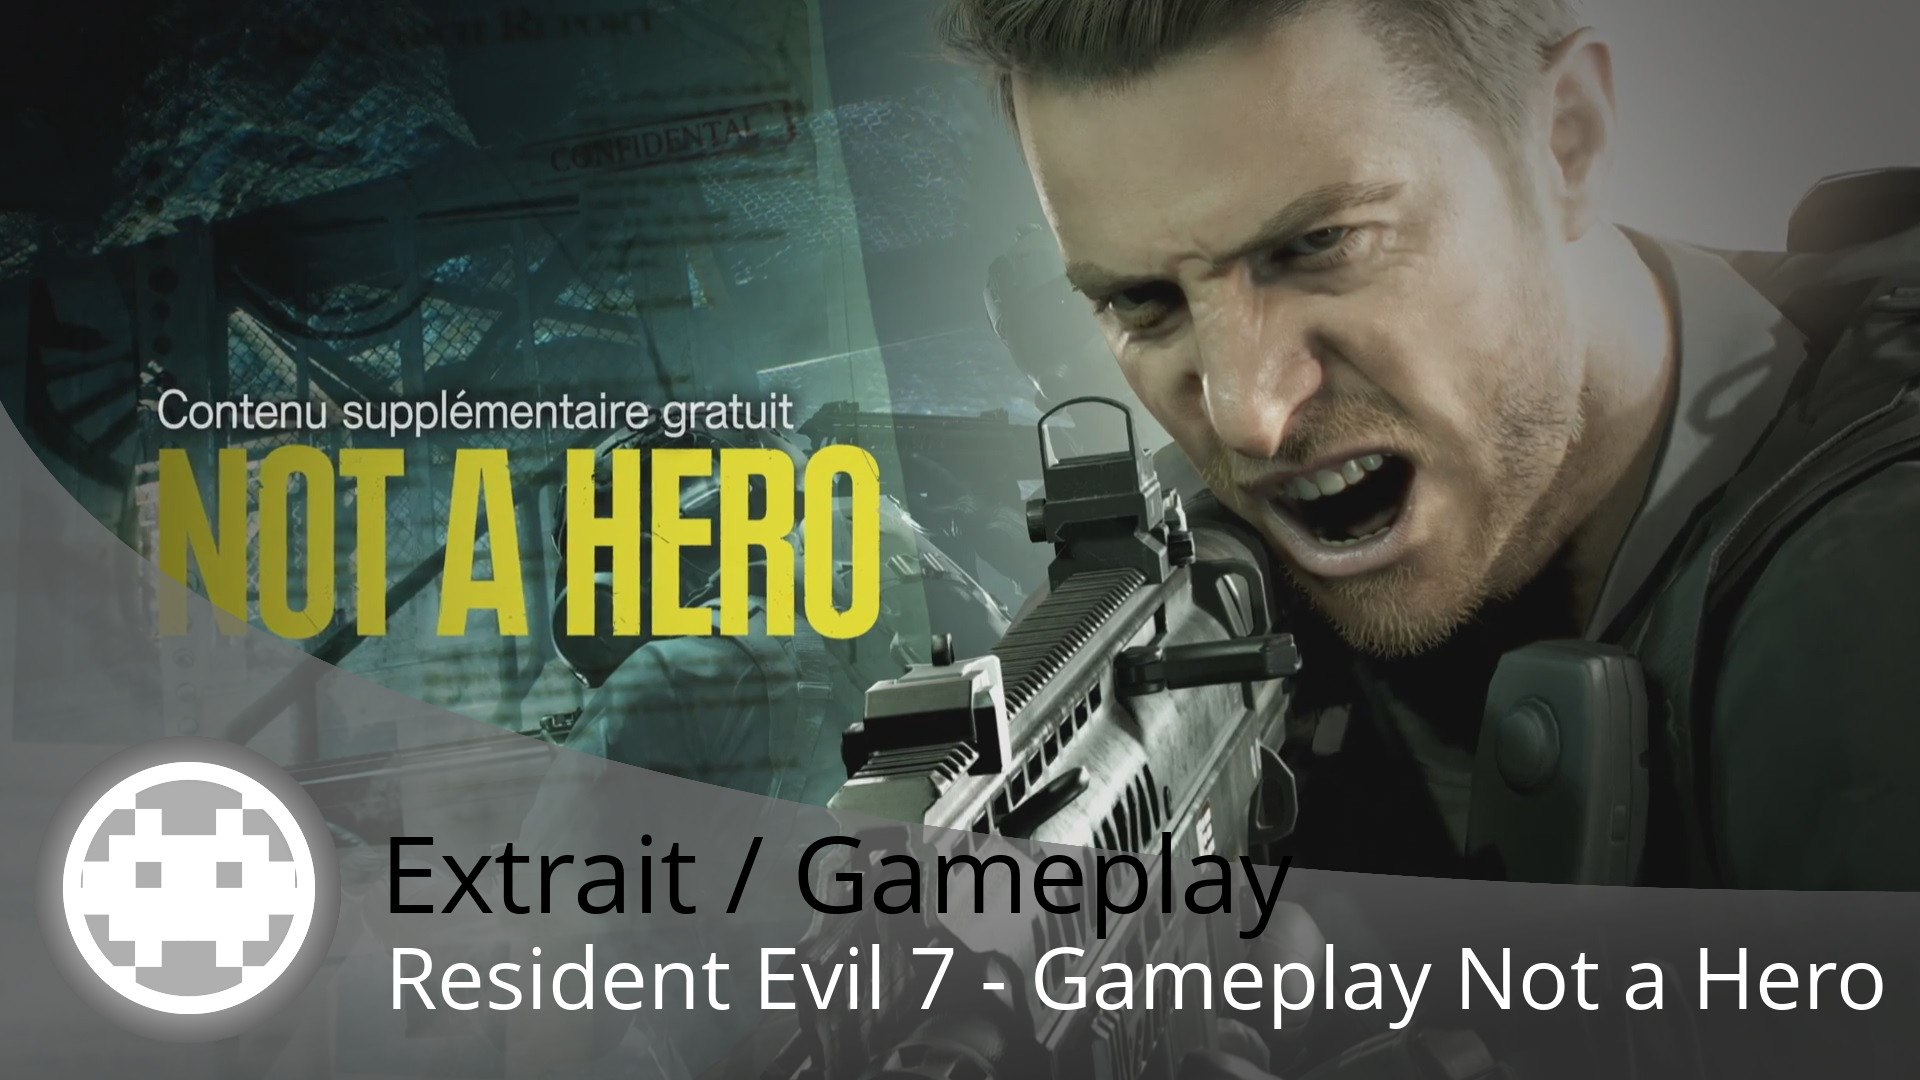 Extrait / Gameplay - Resident Evil 7: Not a Hero - Gameplay dans la mine avec Chris Redfield